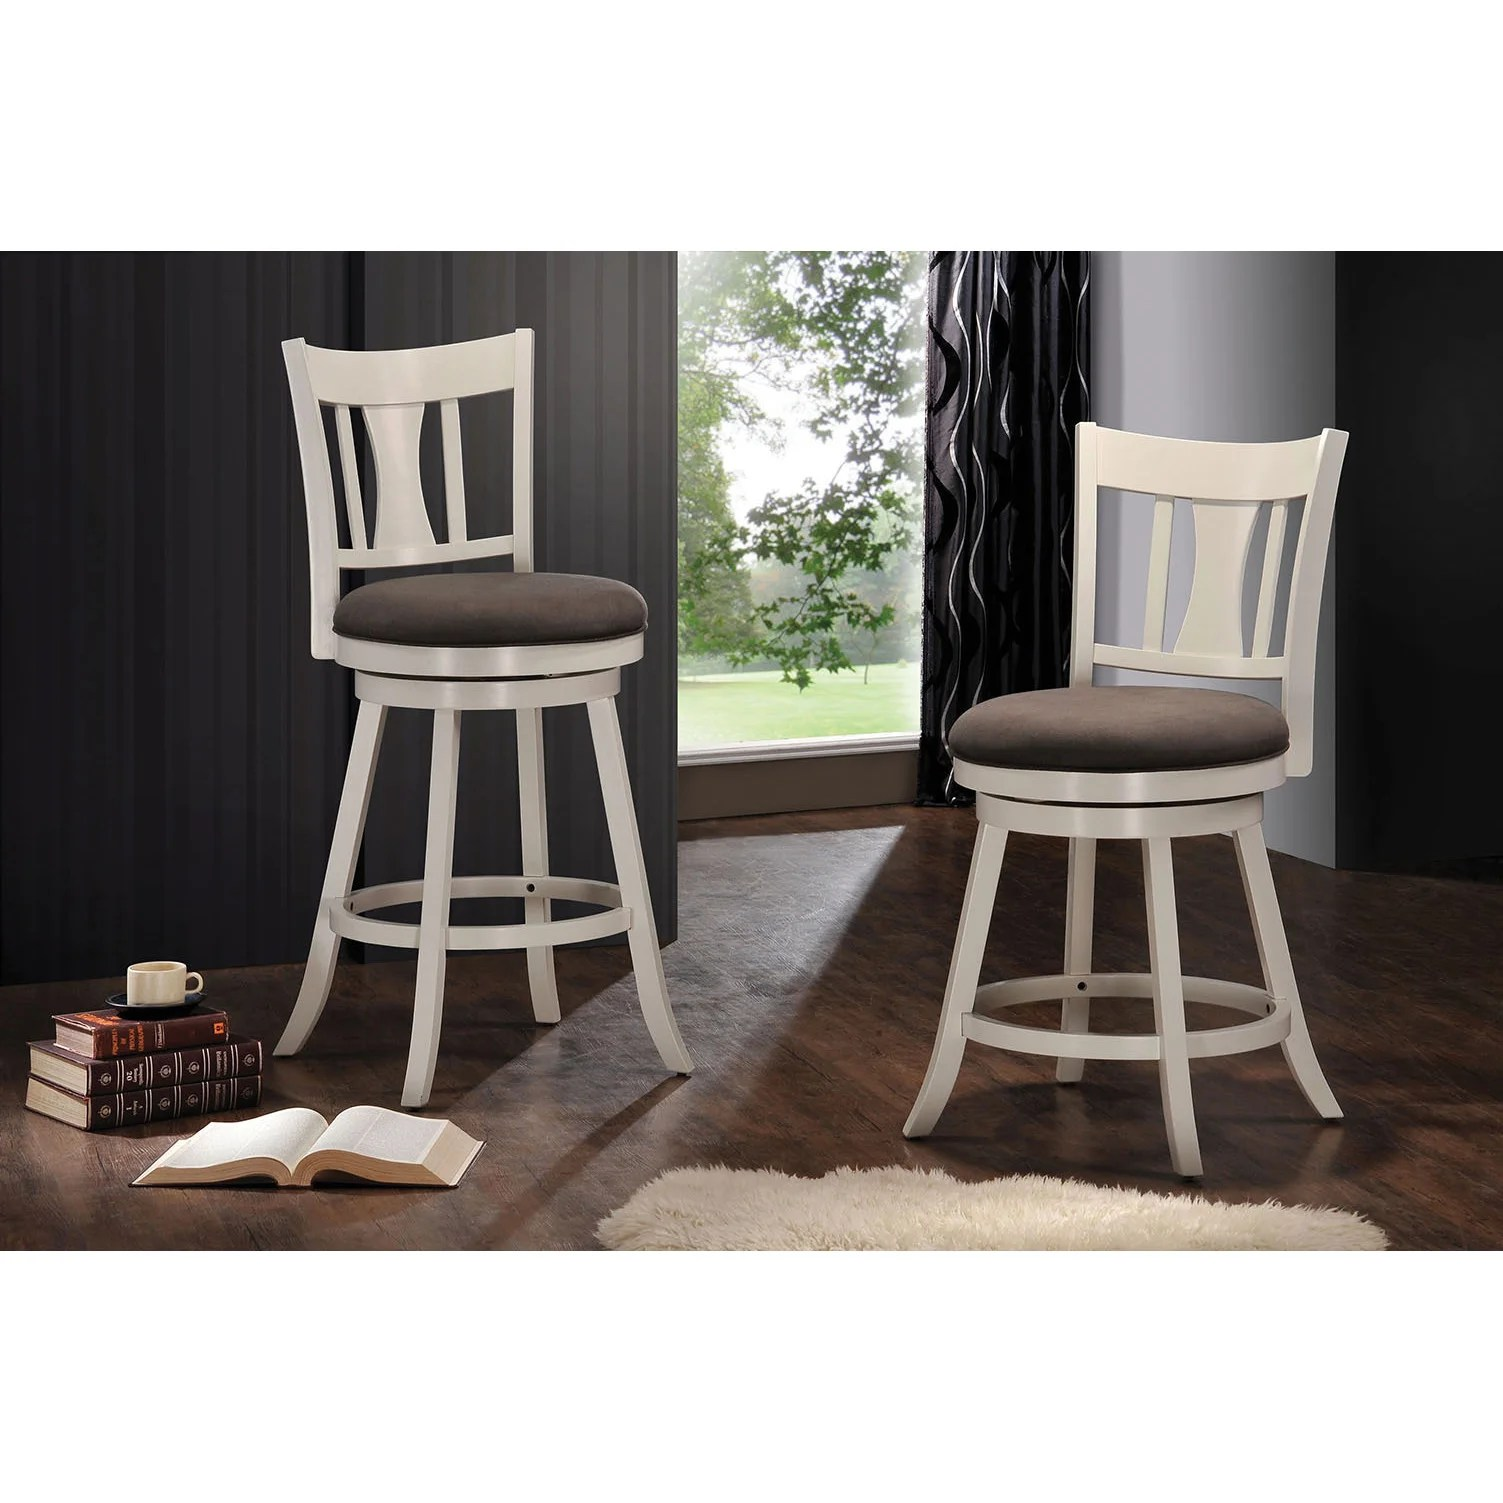 Fabric Counter Height Bar Stools Tabib Fabric And White Wood Counter Height Chair With Swivel